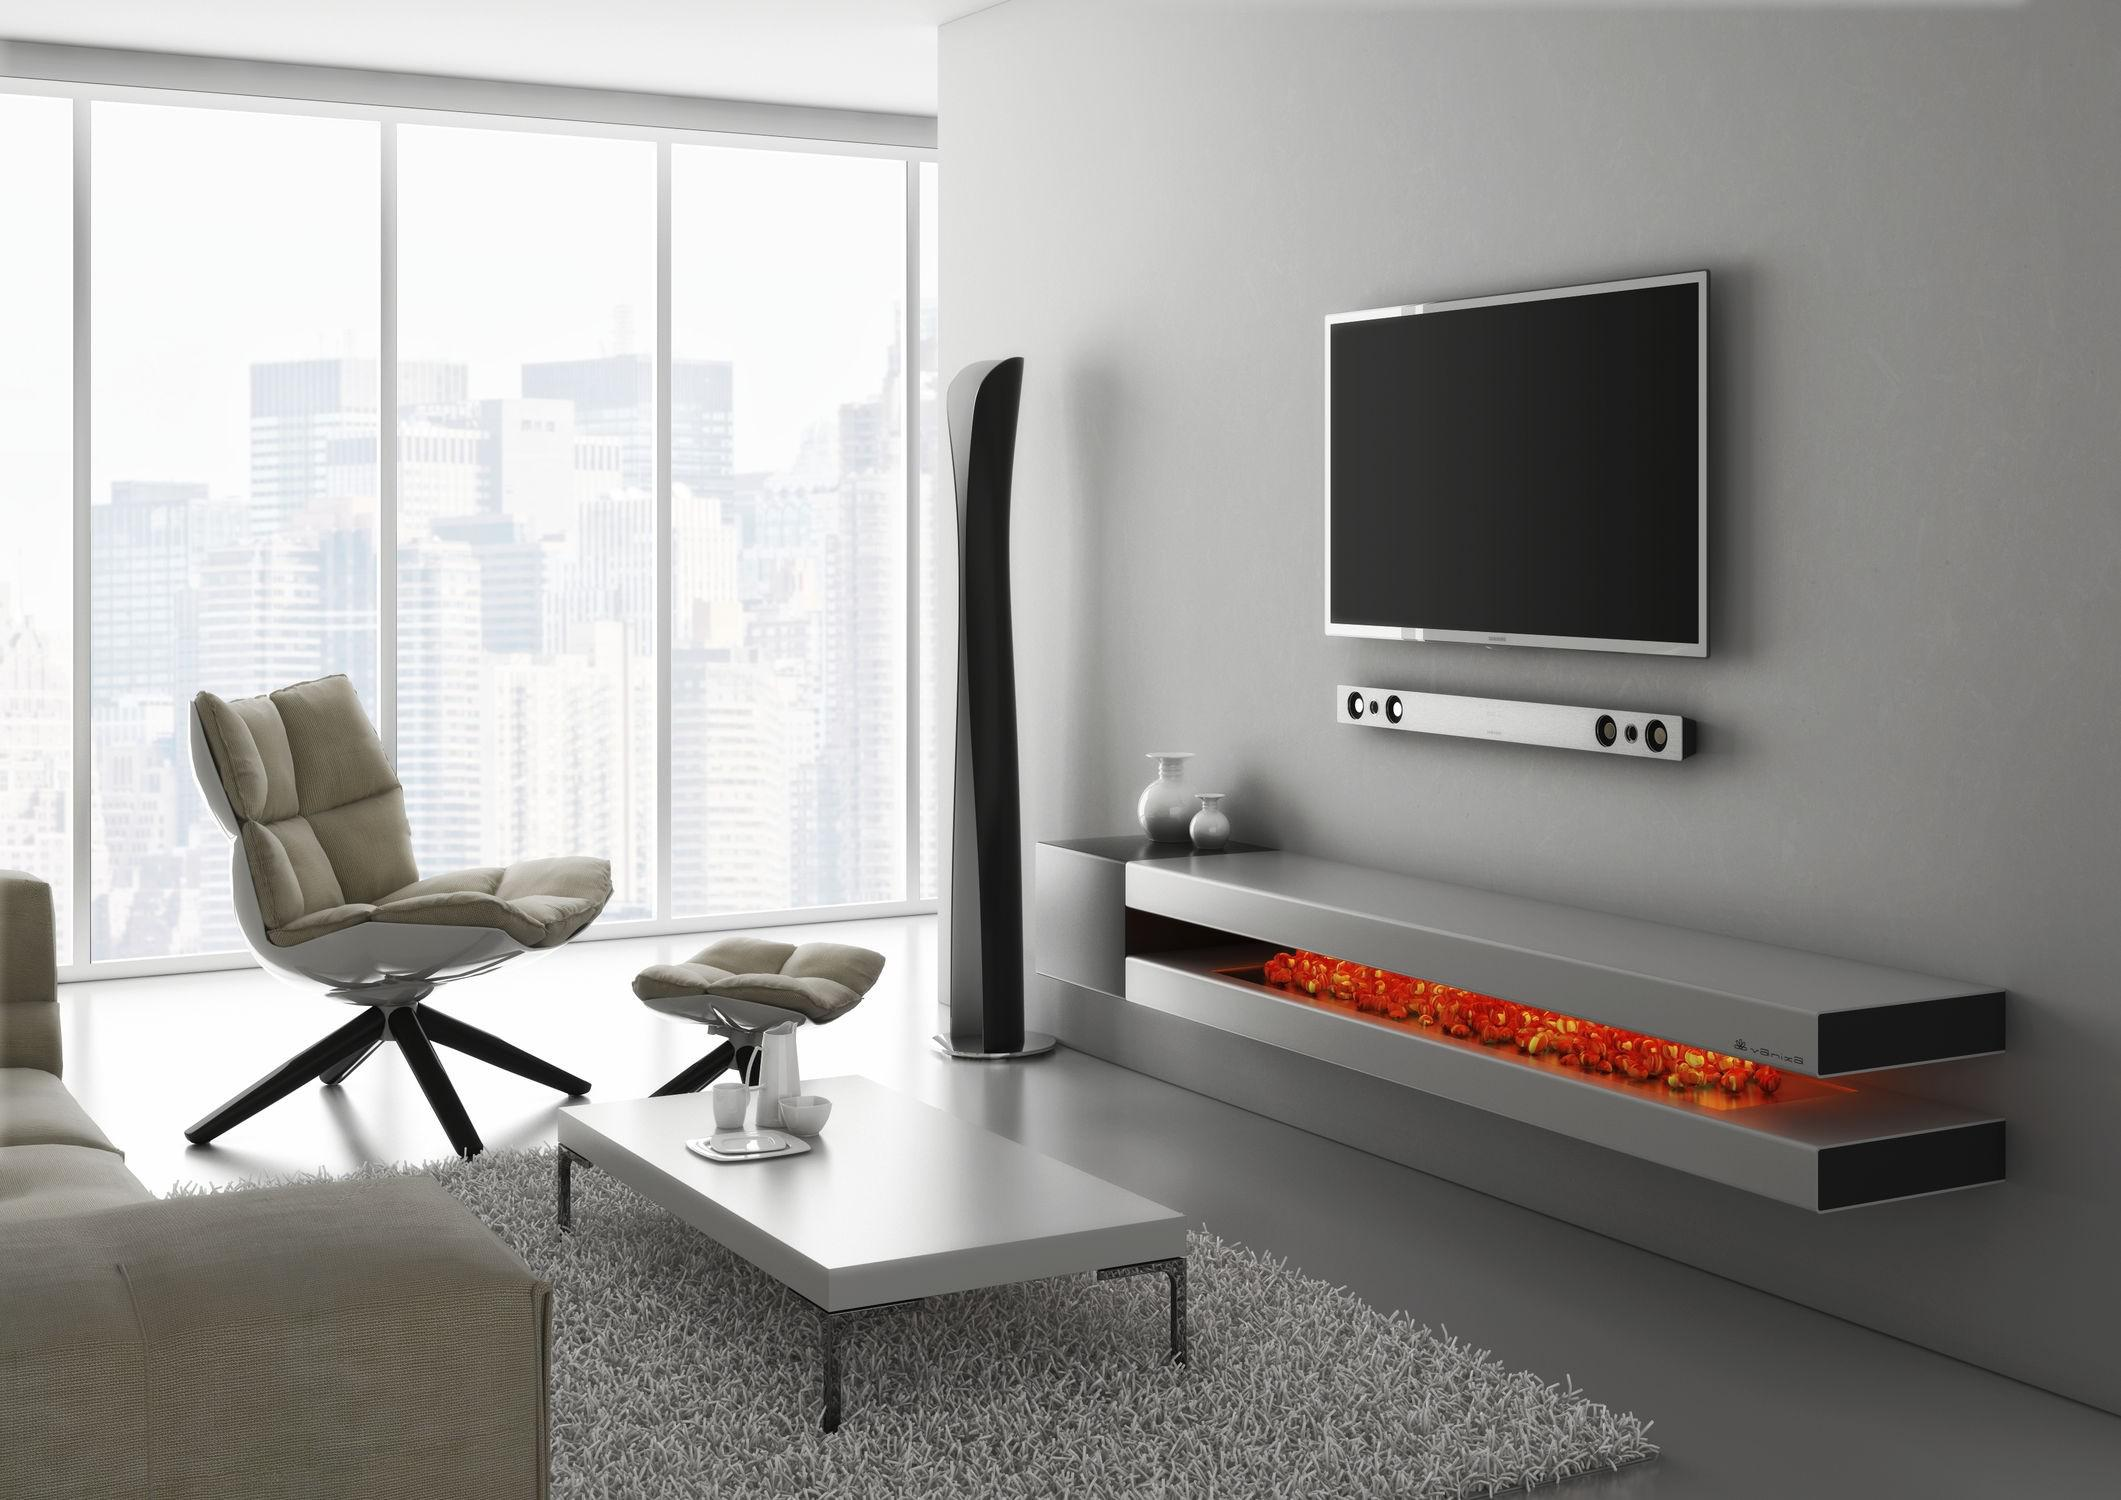 Image of: Modern Tv Wall Mount Ideas For Living Room